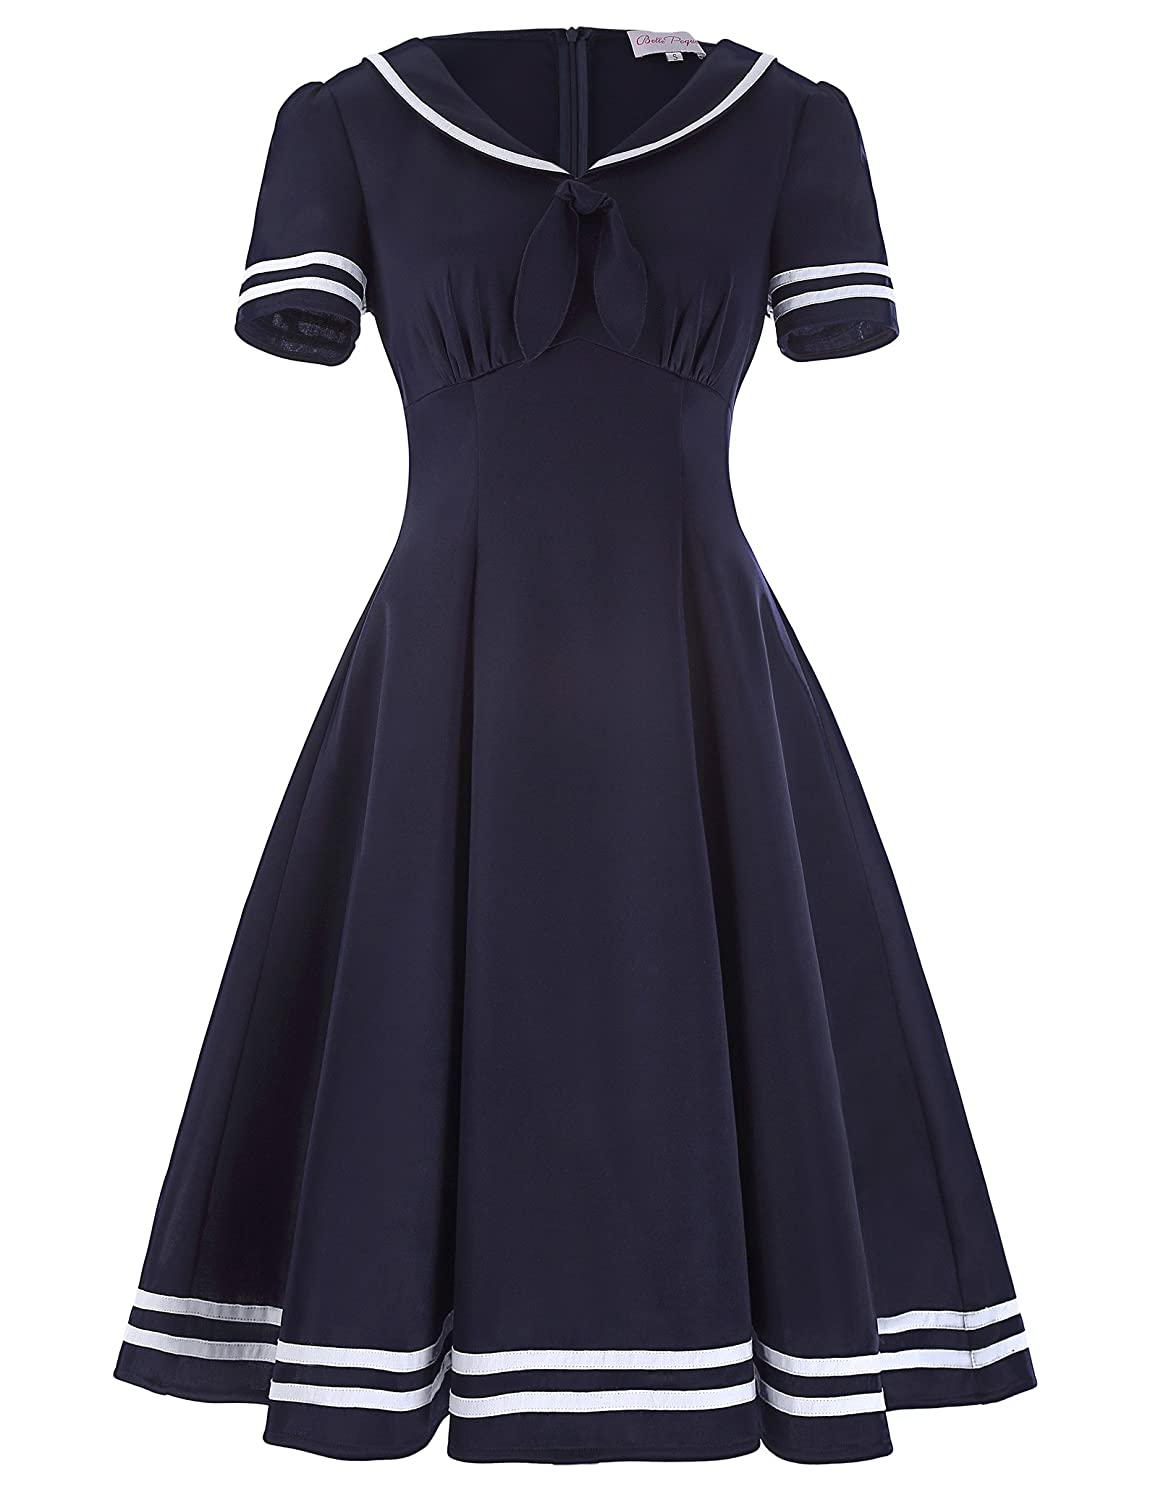 Swing Dance Dresses | Lindy Hop Dresses & Clothing Belle Poque Womens Retro Sailor Dress Short Sleeve Cocktail Party Swing Dress $29.99 AT vintagedancer.com